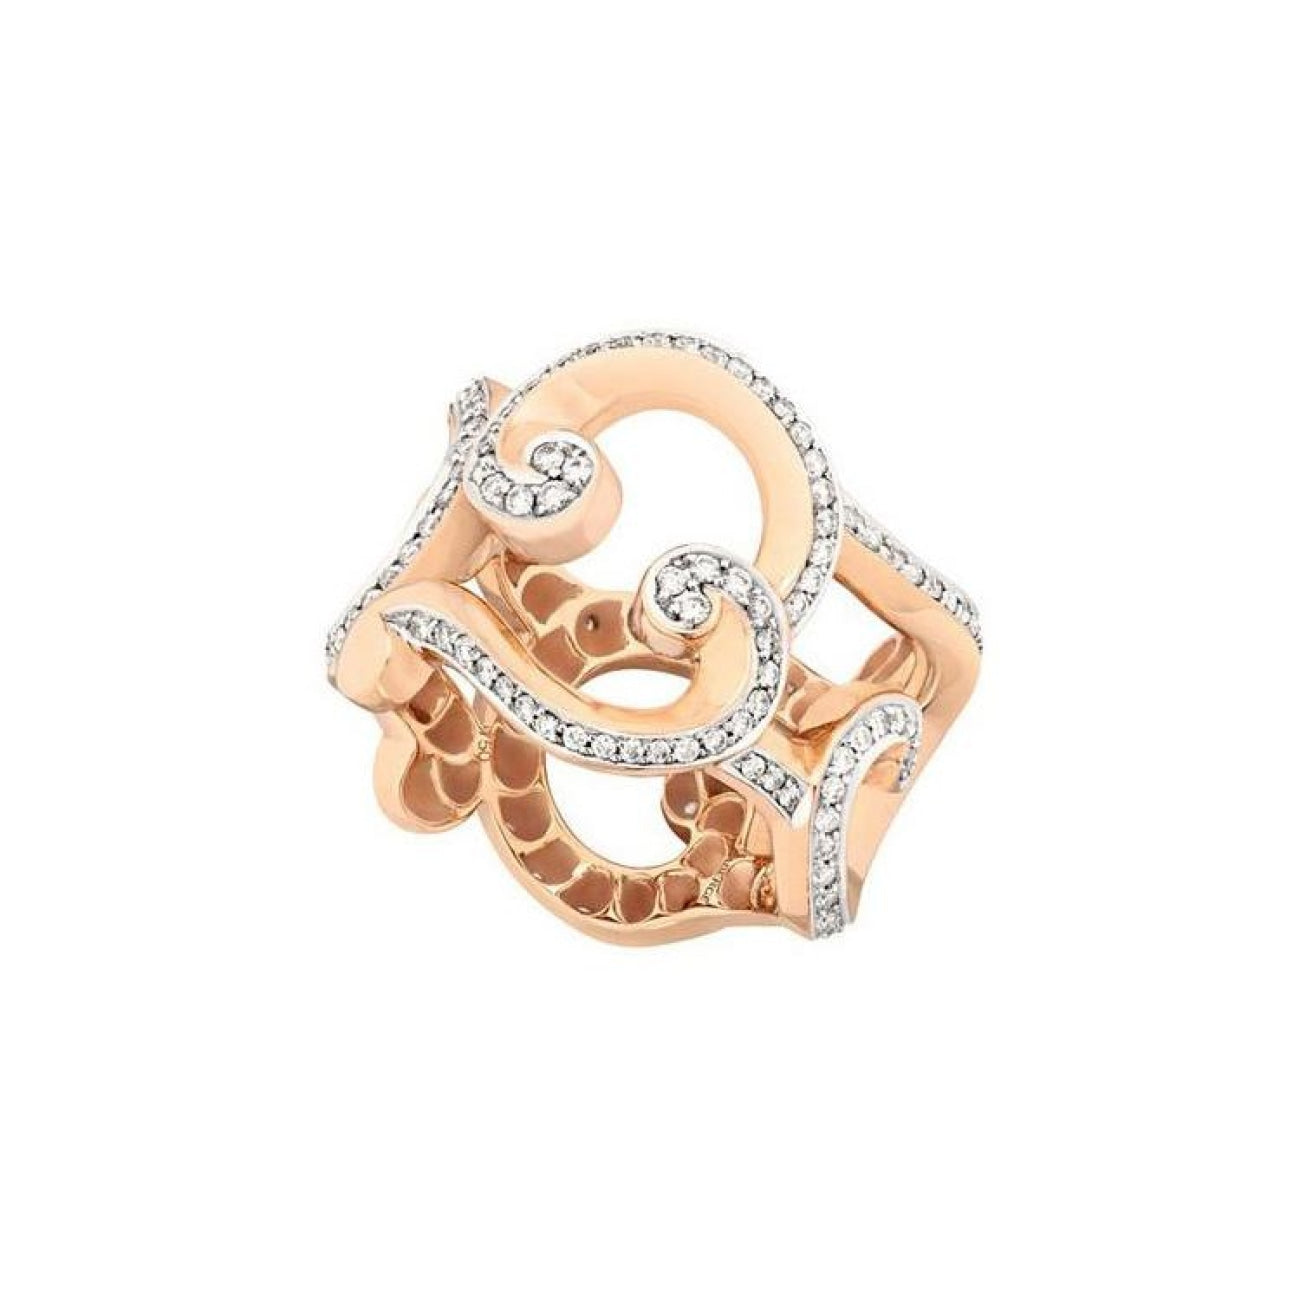 Fabergé Jewelry - Rococo Pavé Diamond Rose Gold Ring | Manfredi Jewels